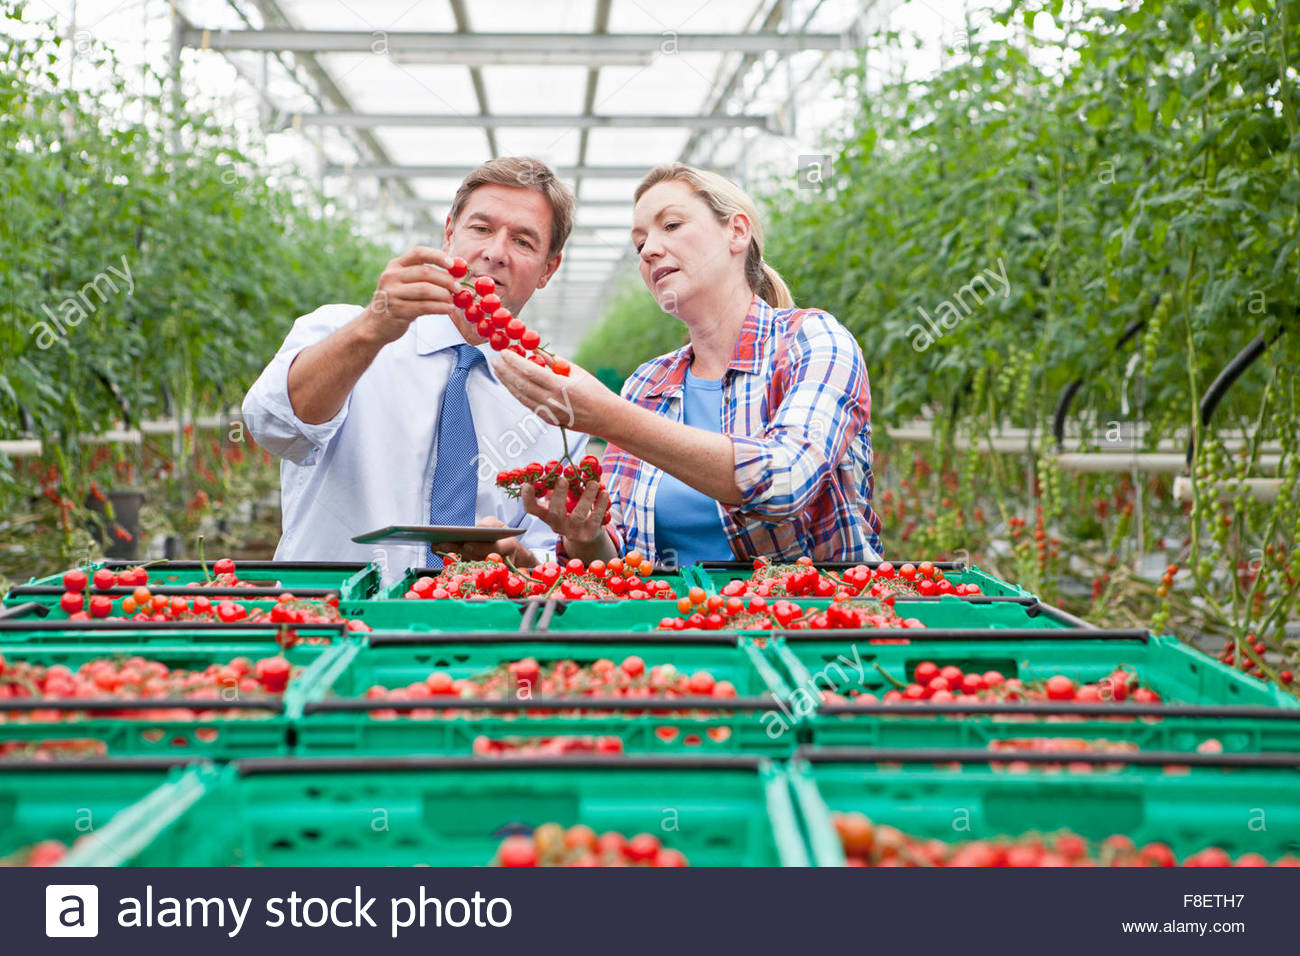 Businessman and grower inspecting ripe red vine tomatoes in greenhouse - Stock Image